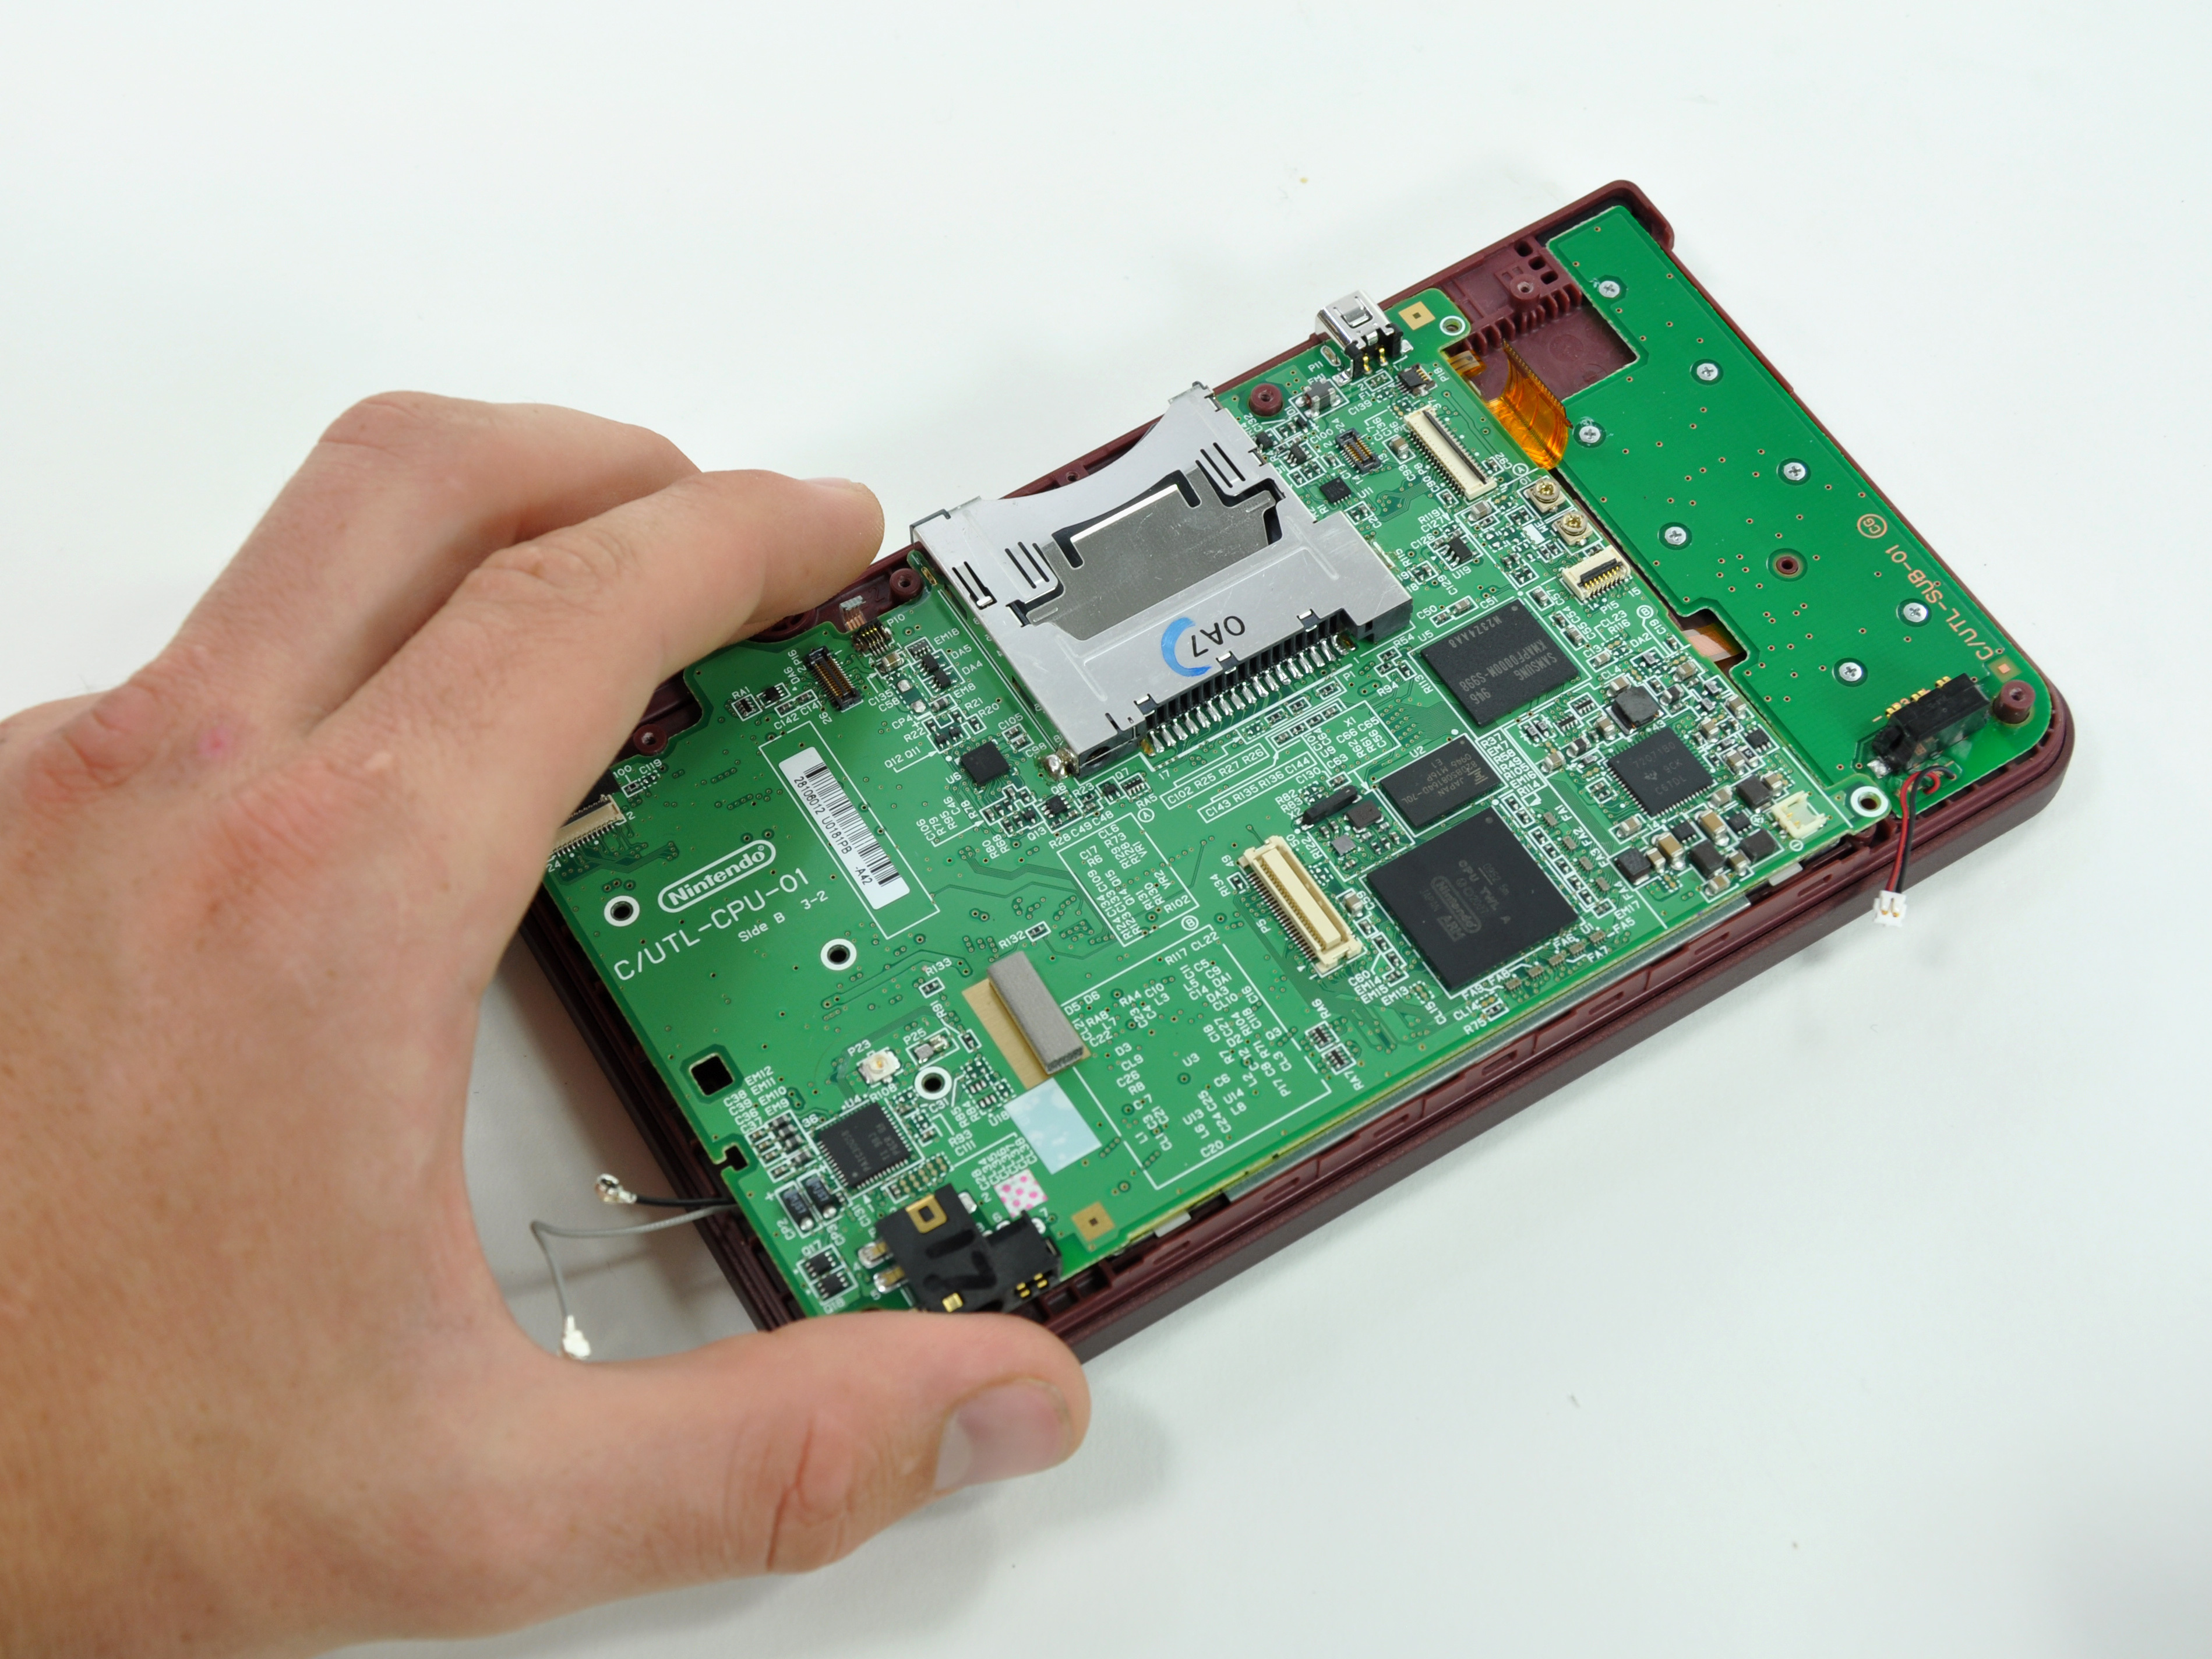 nintendo dsi xl motherboard replacement ifixit repair guide rh ifixit com Nintendo 3DS XL Nintendo 3DS